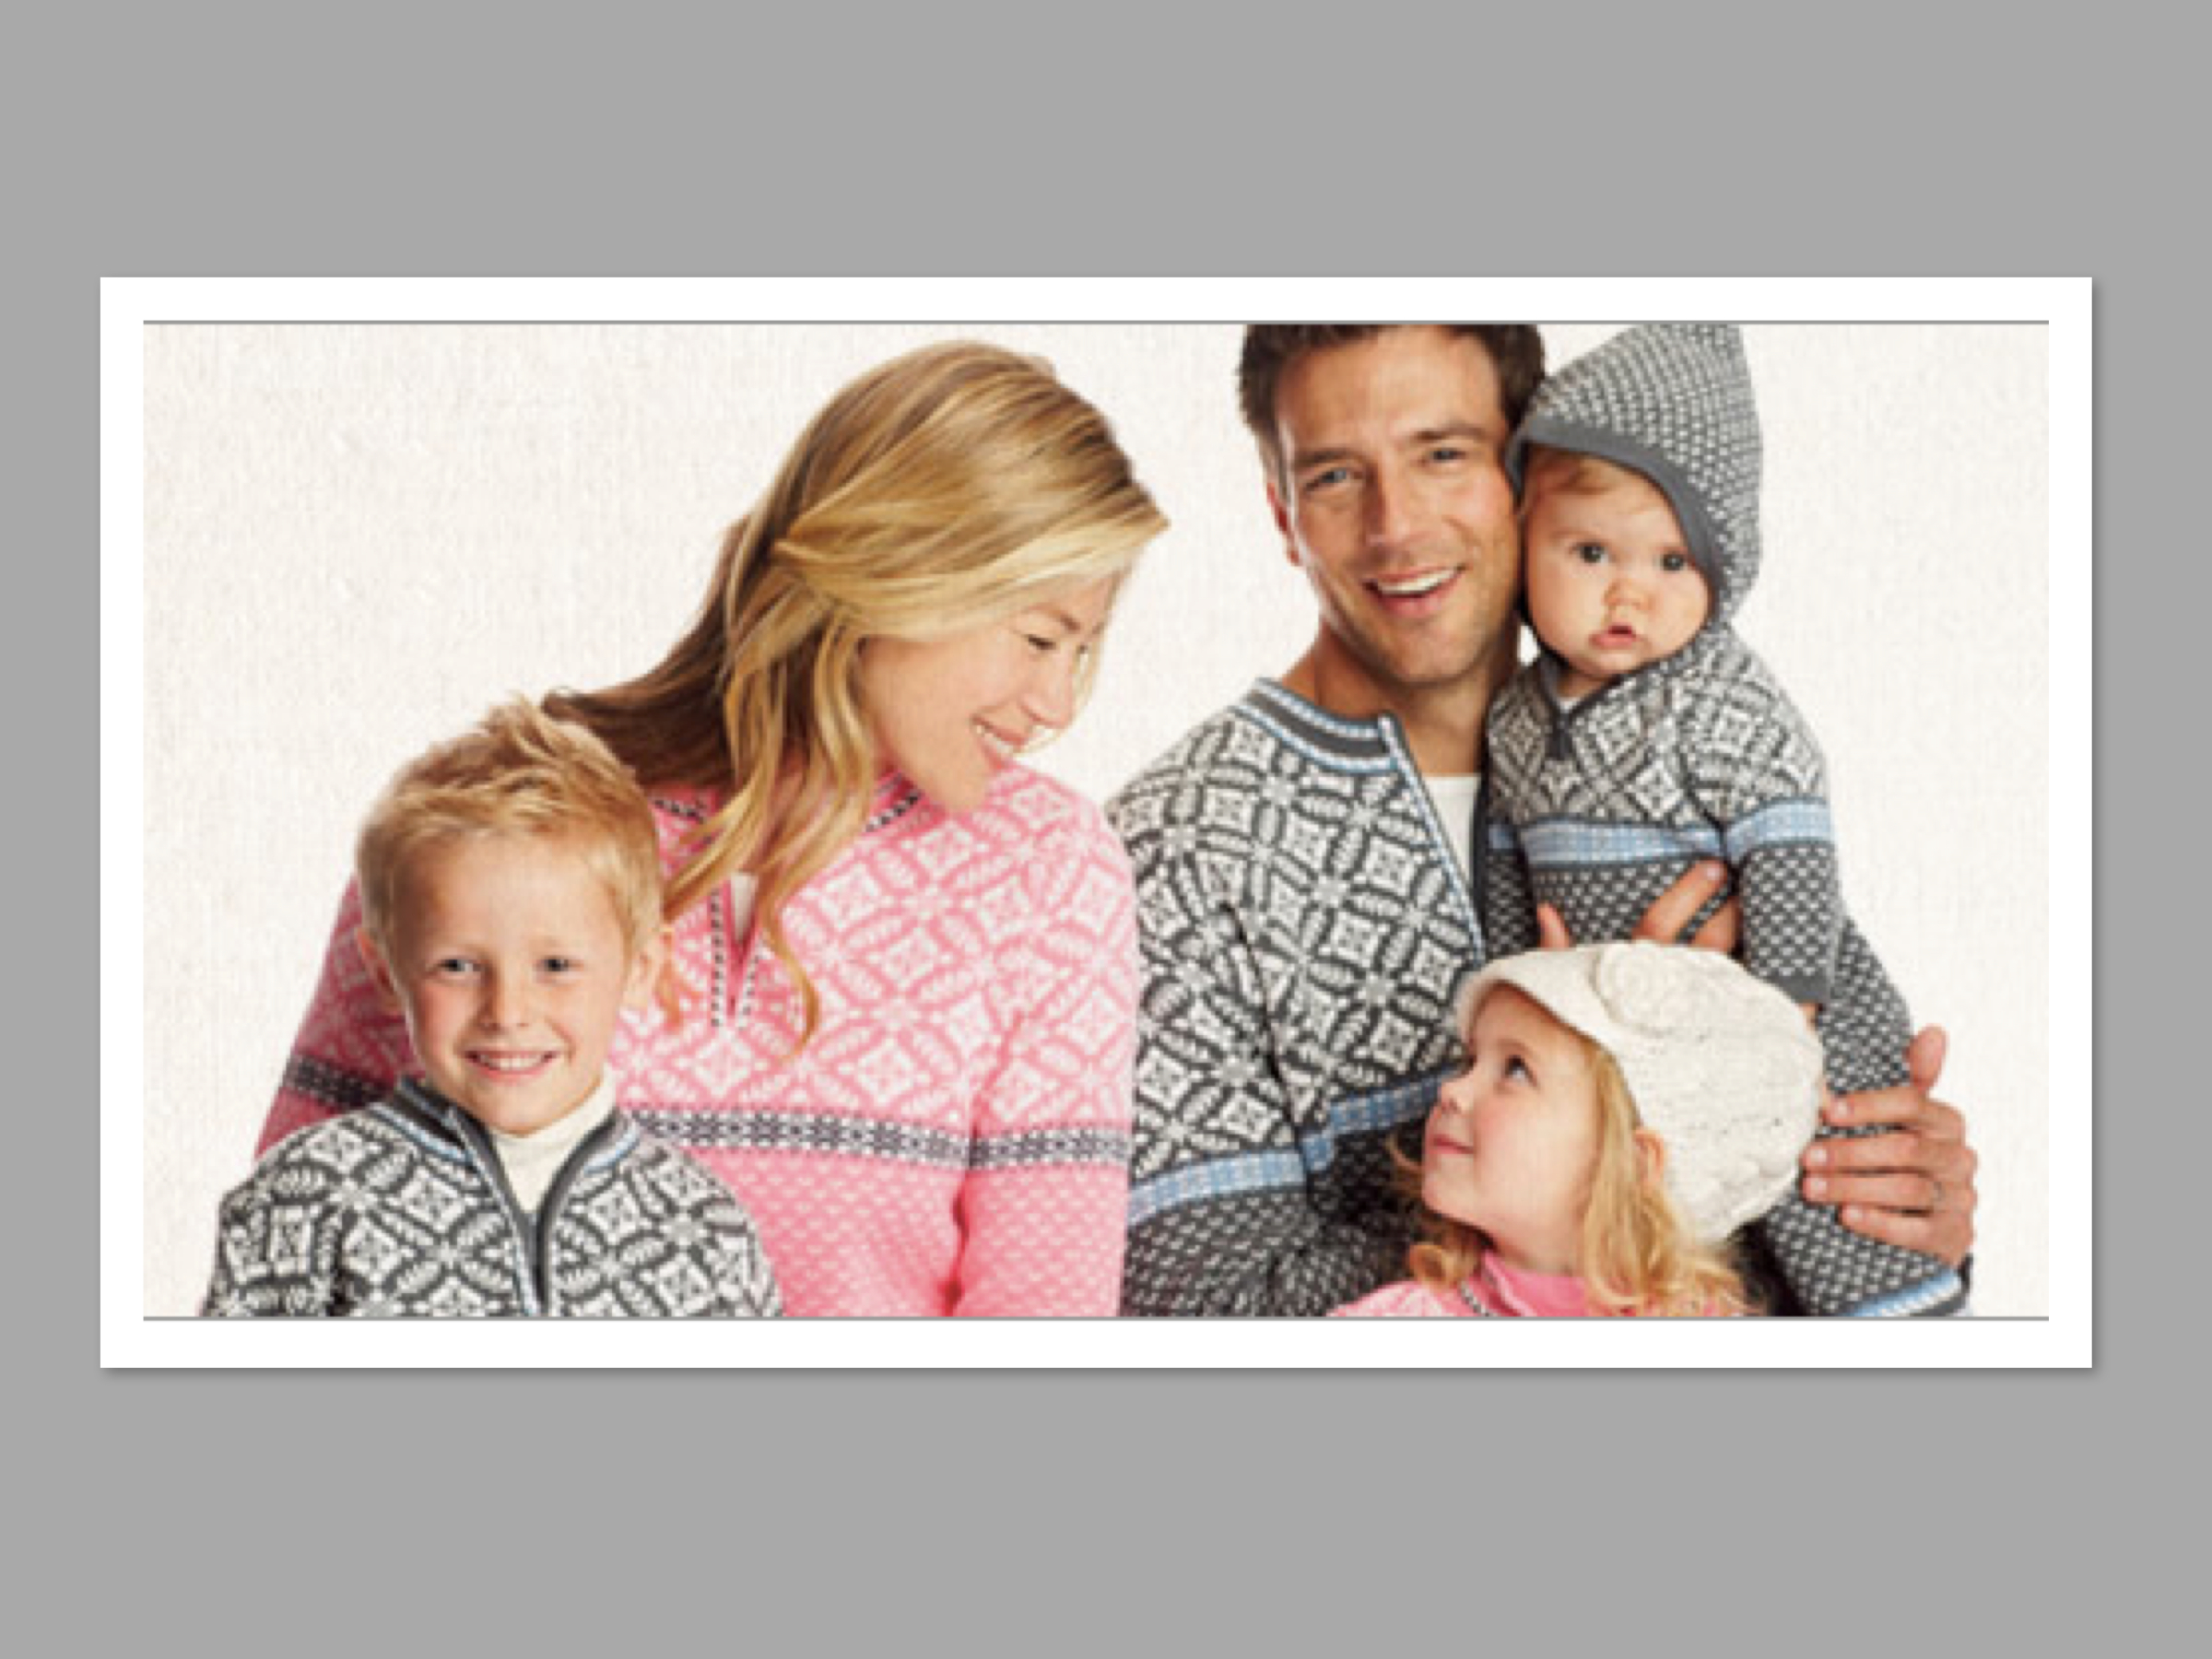 Matching Christmas Pajamas For Family Pictures Wallpapers